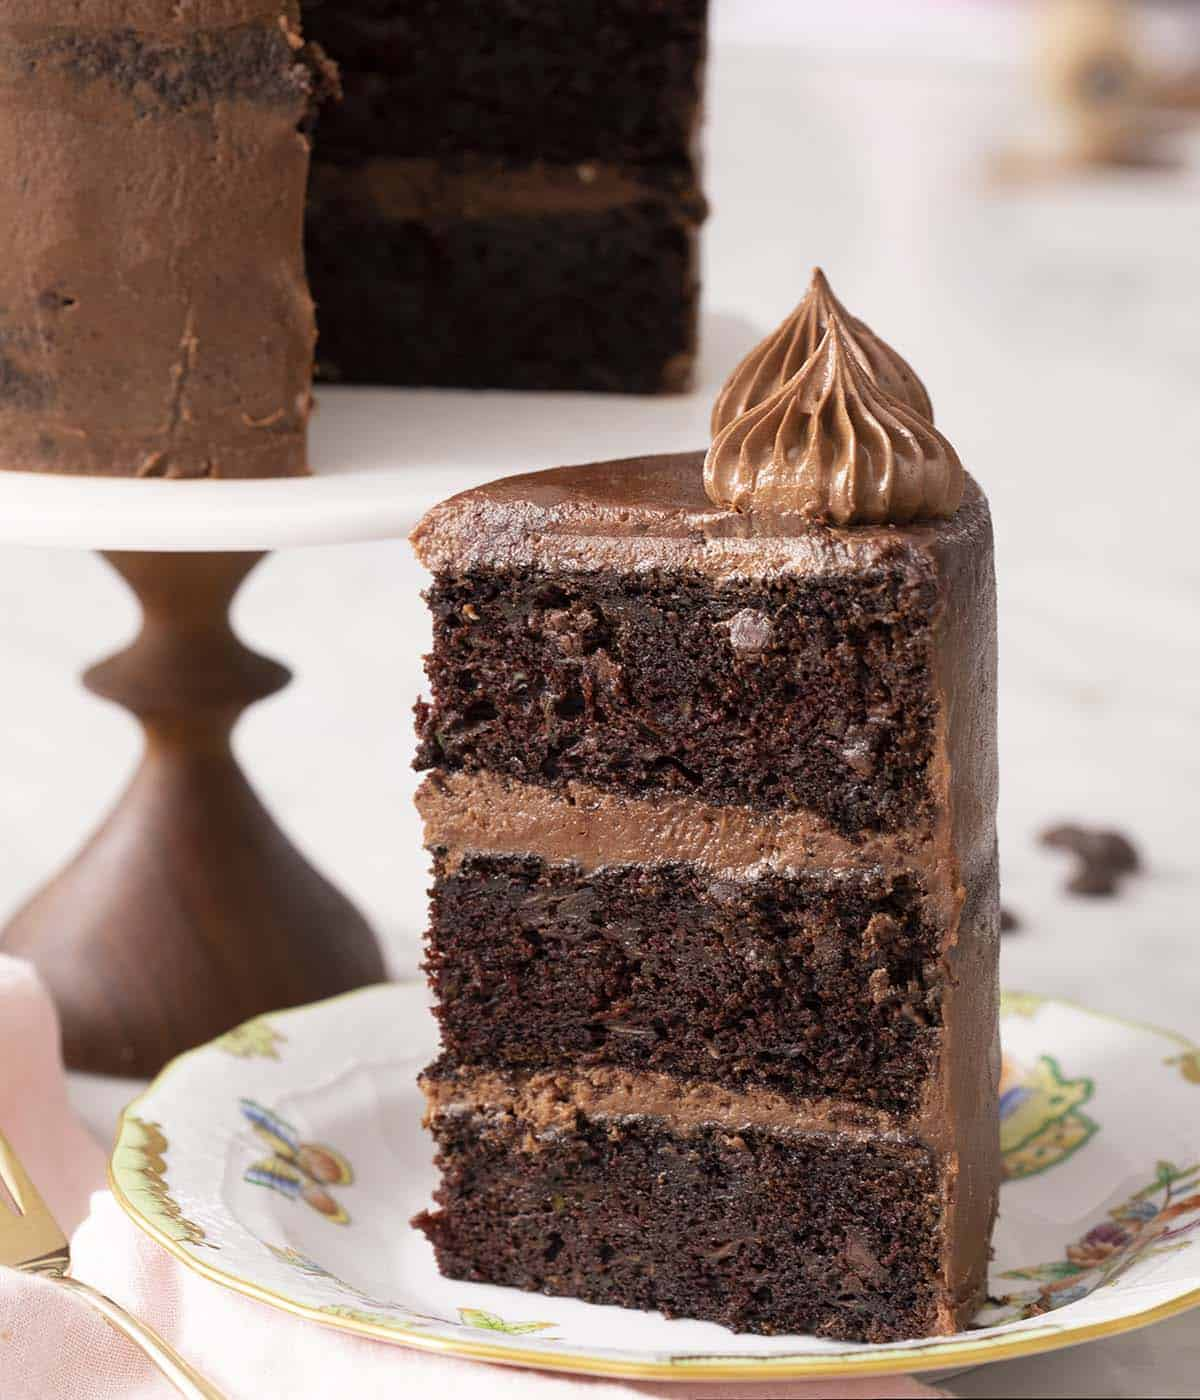 A big piece of three layer chocolate zucchini cake on a plate.